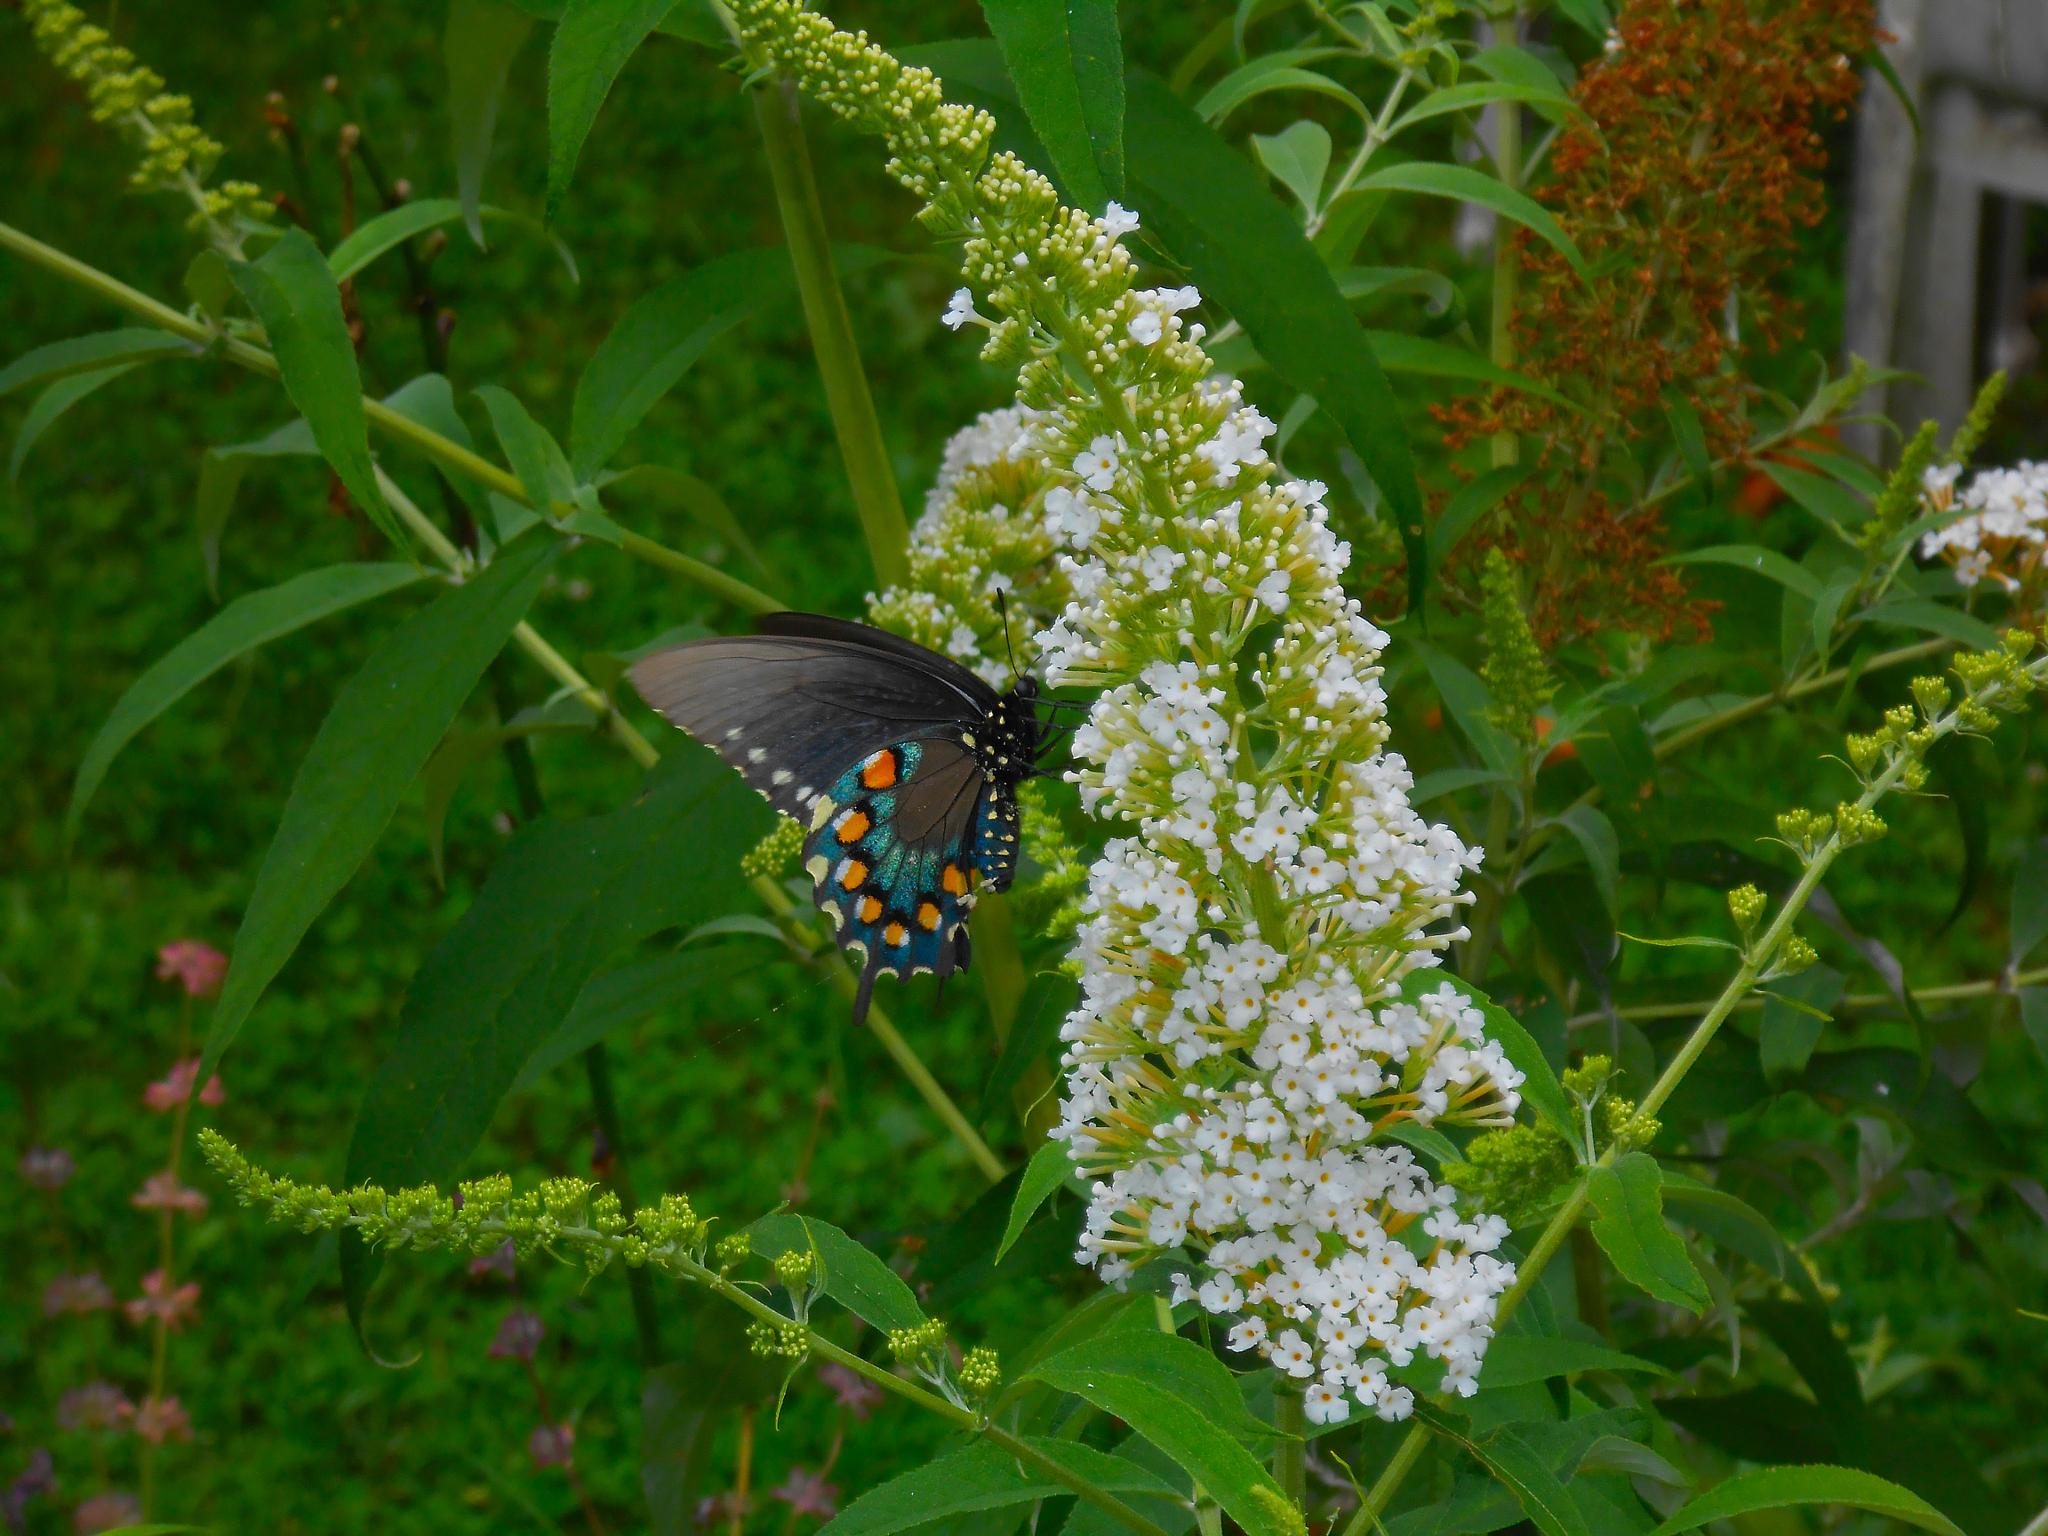 Pipevine Swallowtail On A Butterfly Bush by kiralysha